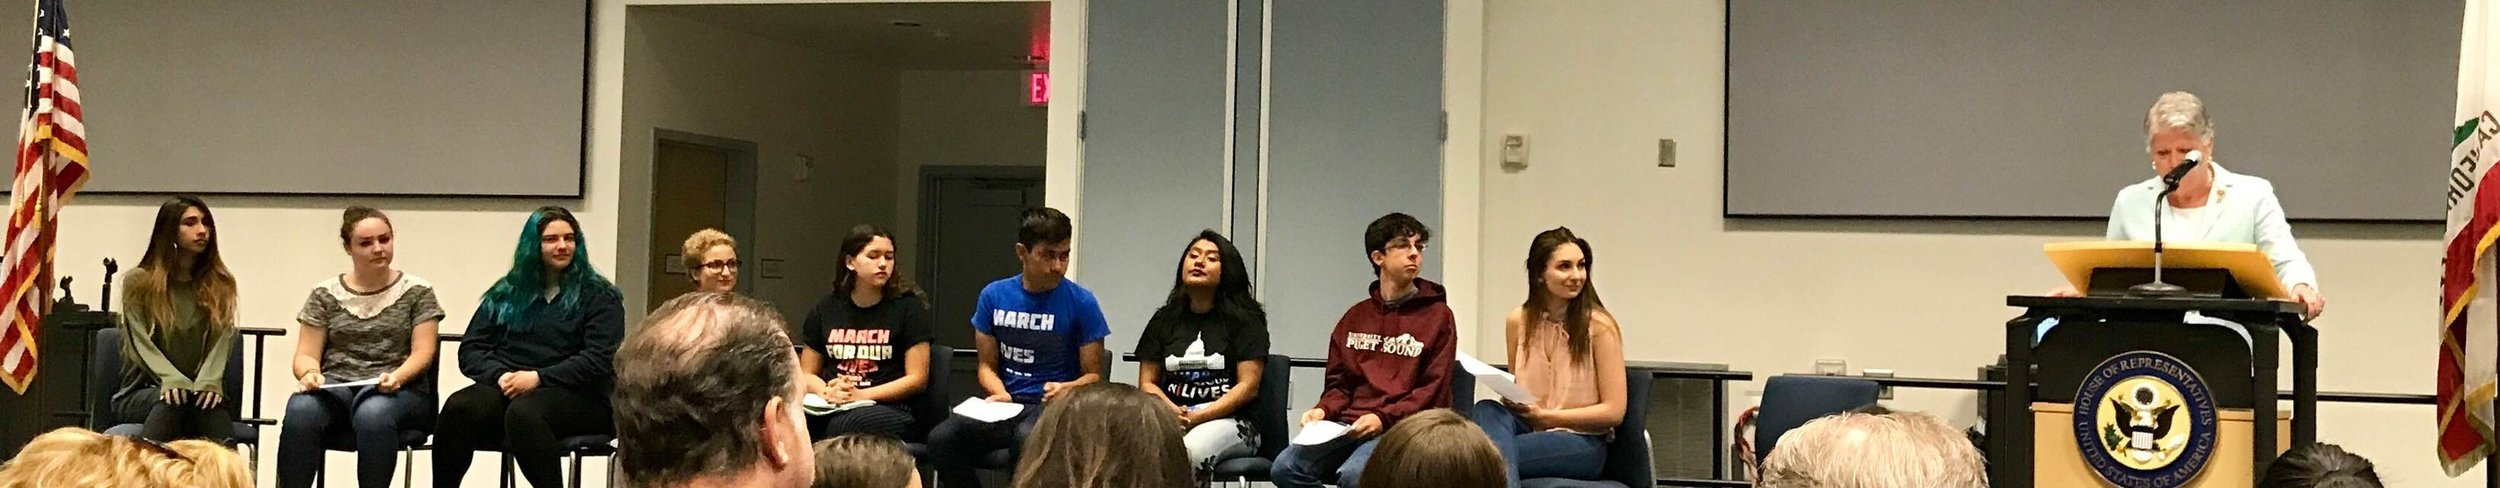 Inspirational student-walkout organizers from across Ventura County joined Rep. Julia Brownley onstage during her Student Town Hall on Gun Safety, April 21 in Camarillo.